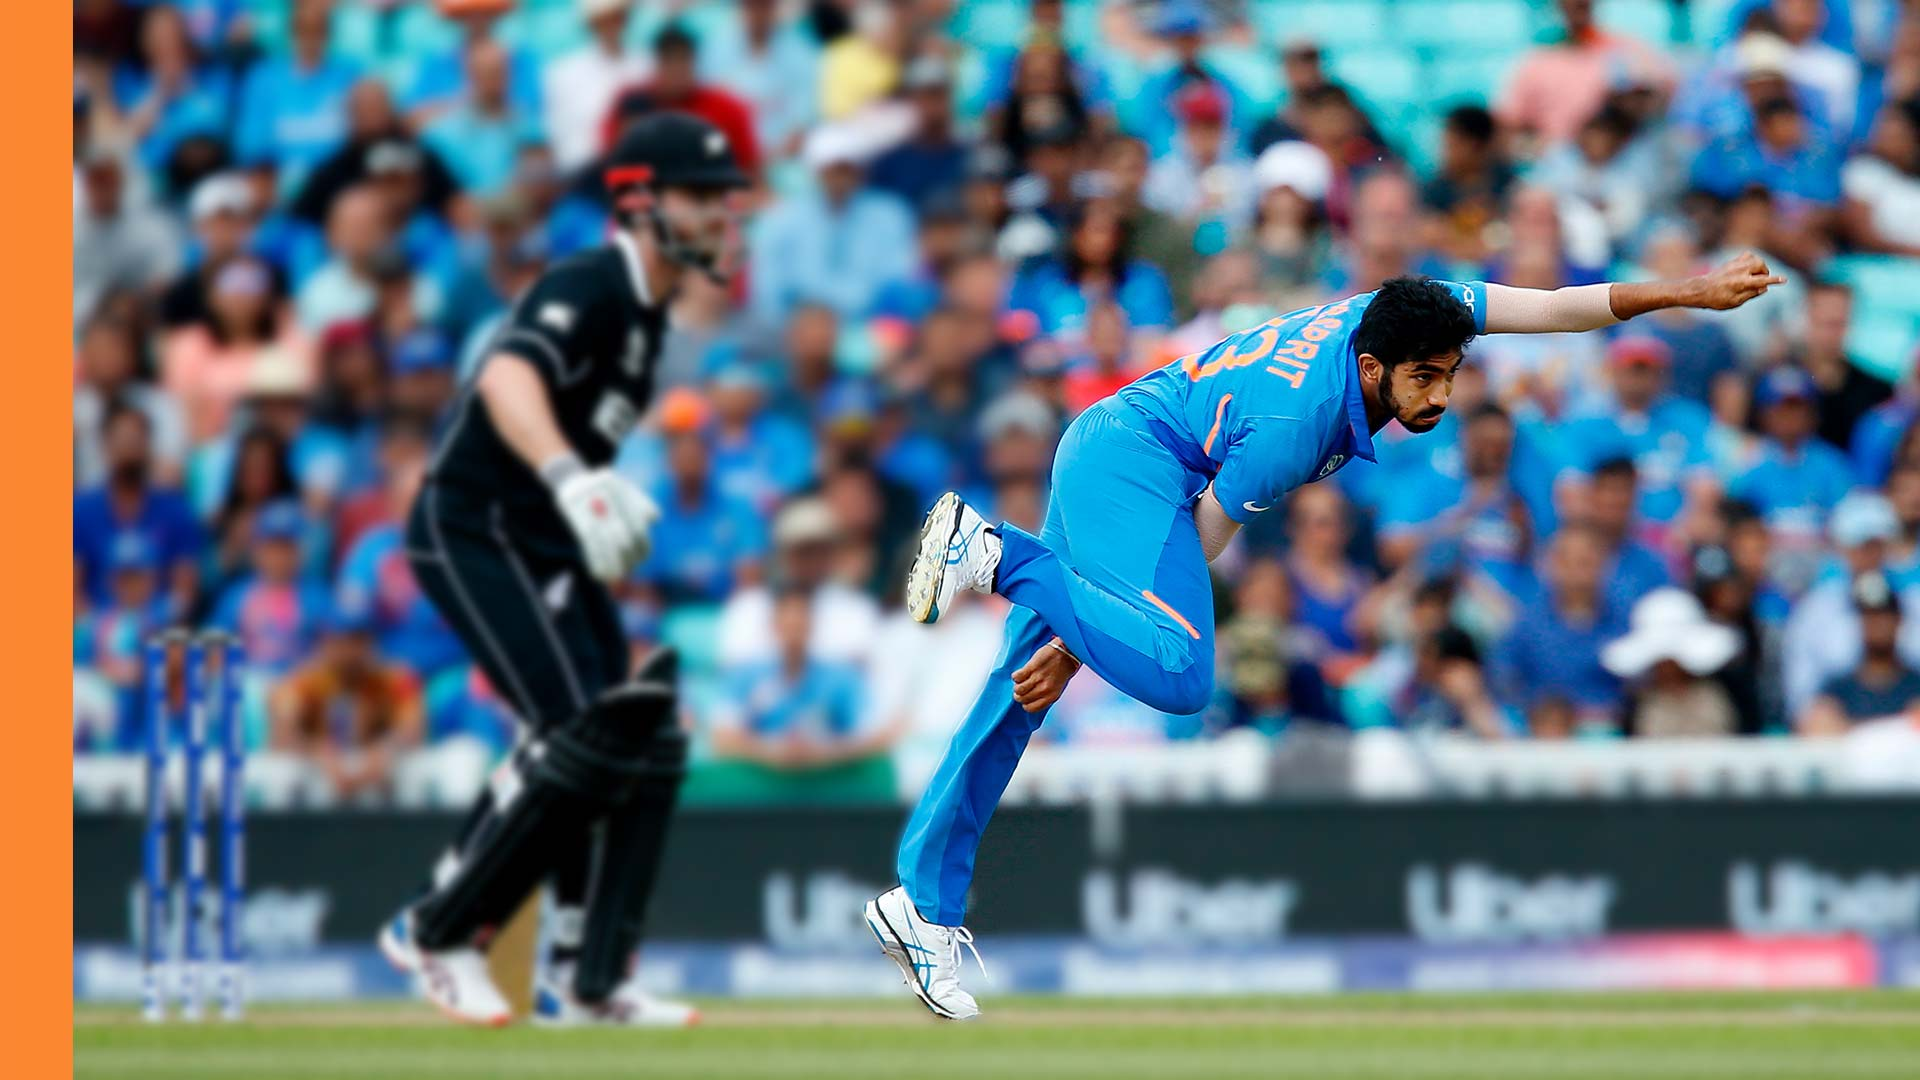 Jasprit Bumrah has been the star player of many a match this world cup.